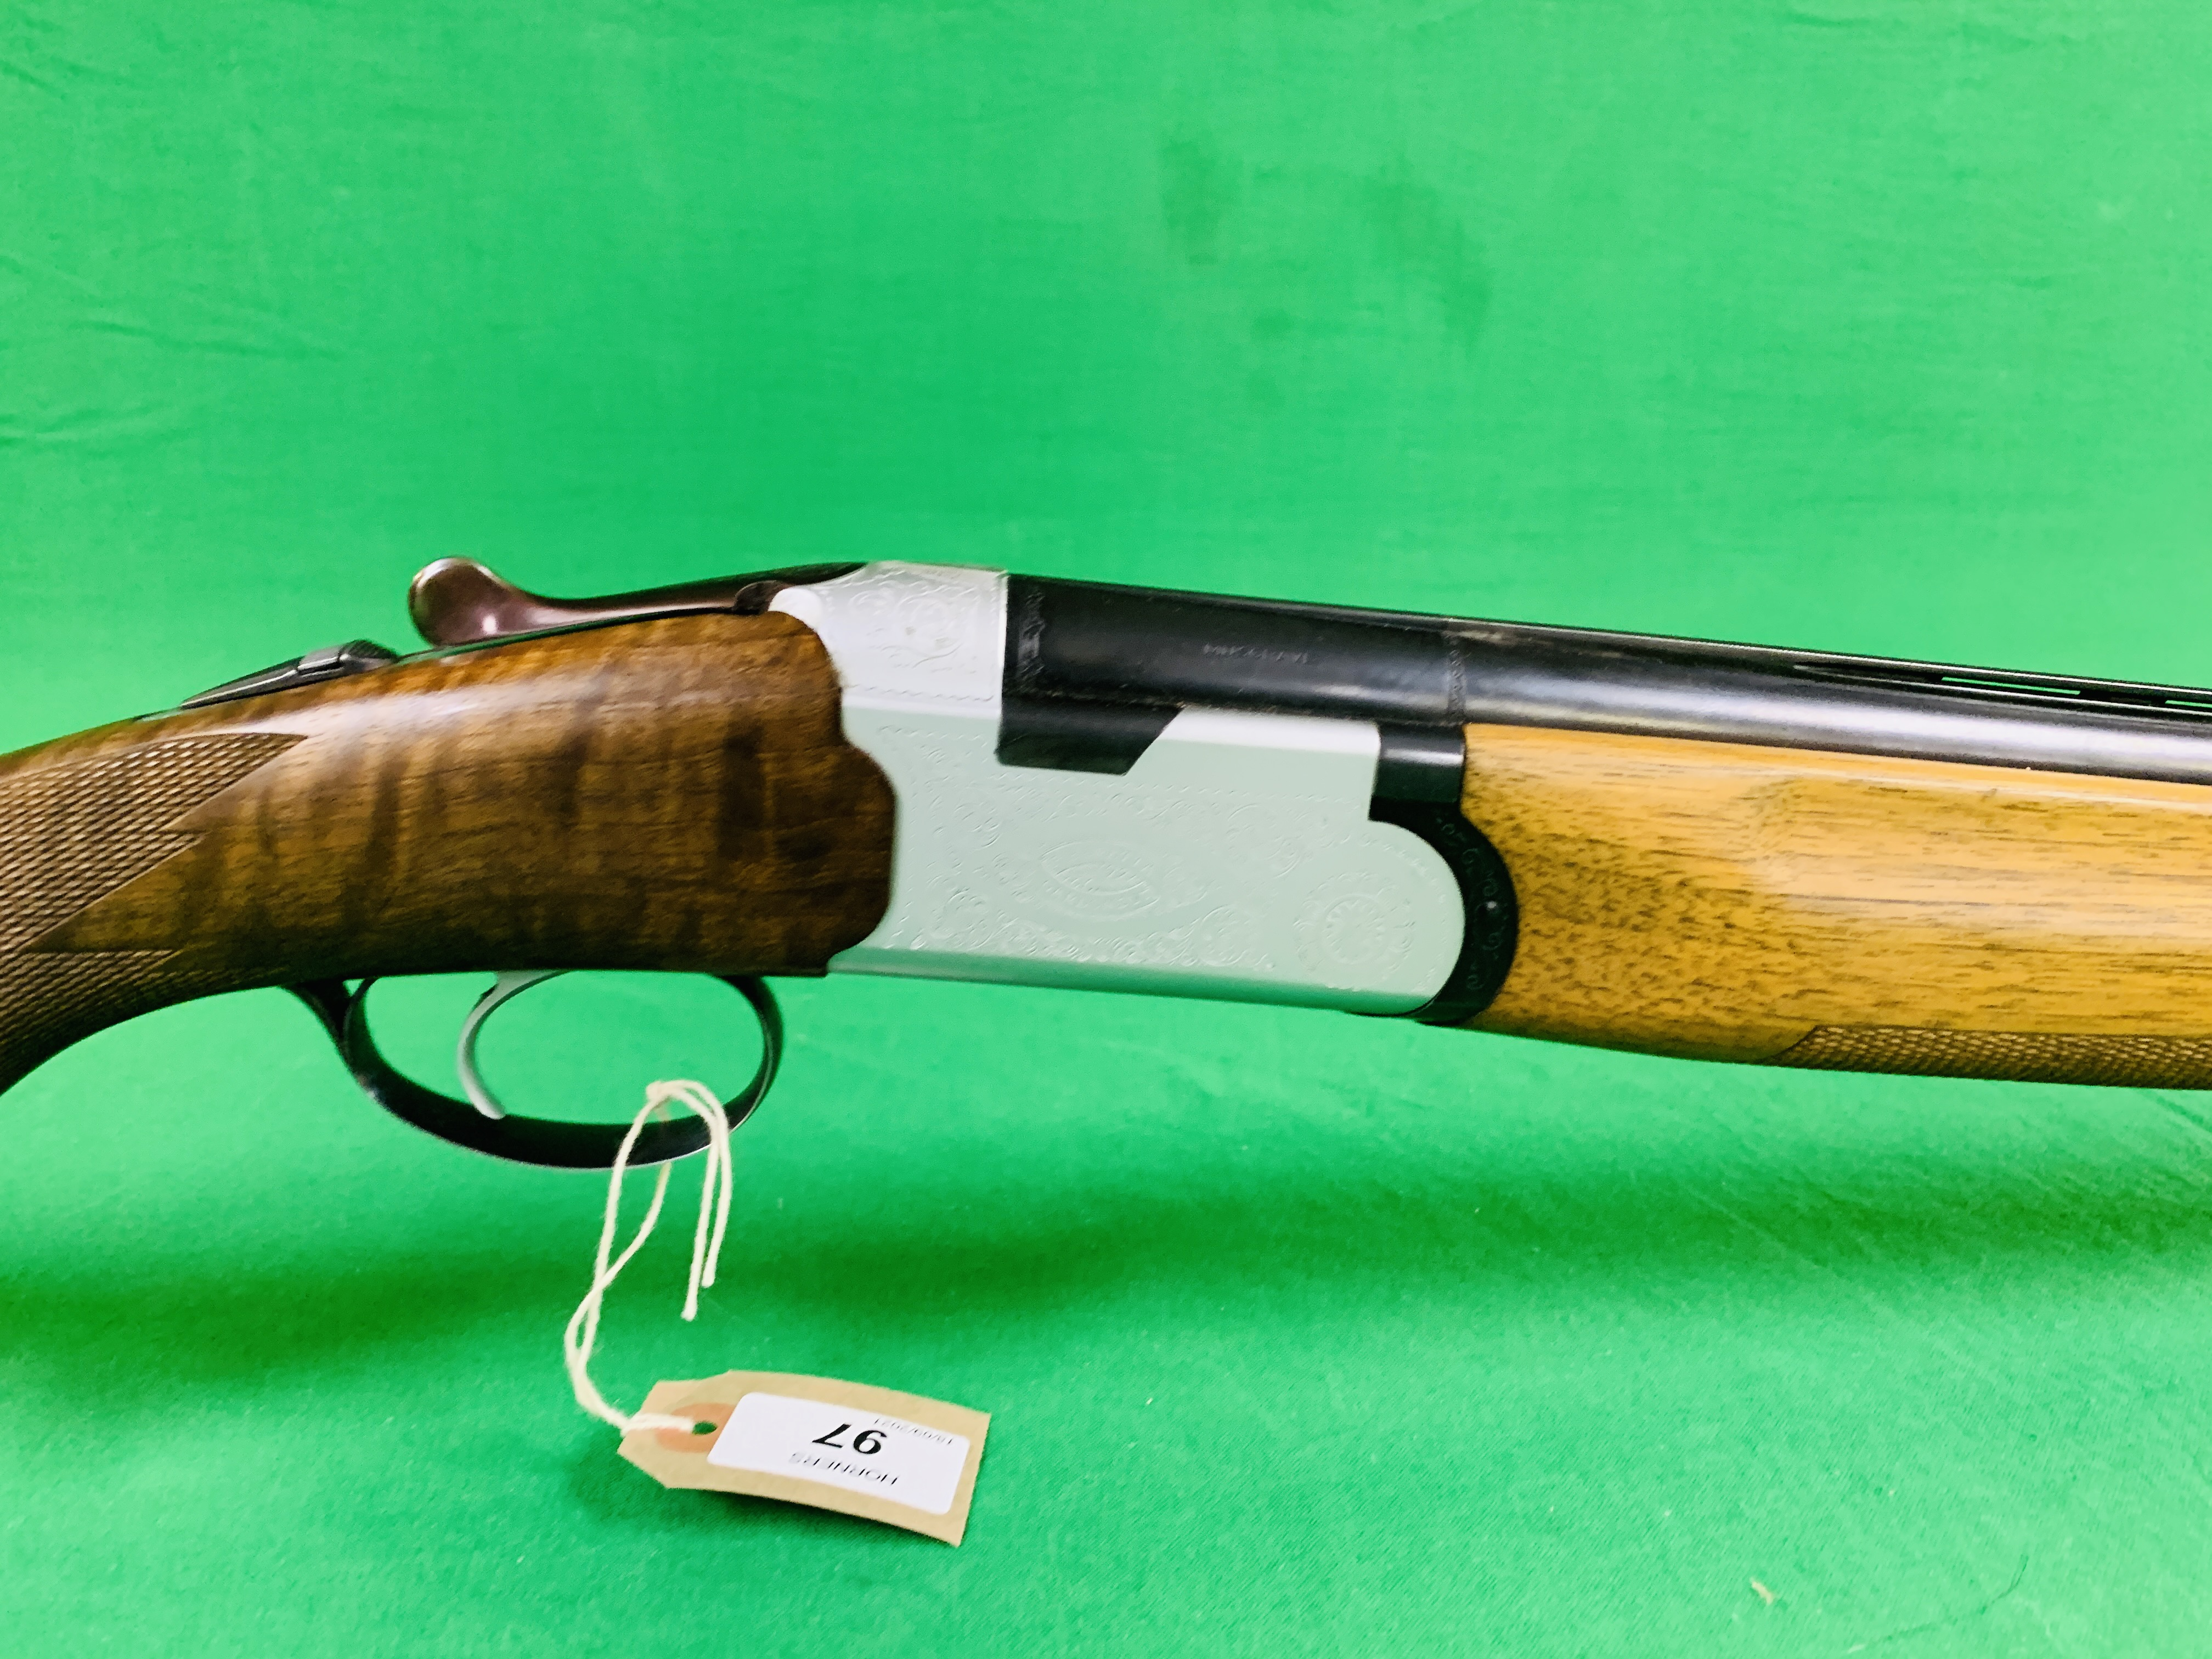 12 BORE BERETTA OVER AND UNDER SHOTGUN # B17388B WITH GUN SLEEVE - (ALL GUNS TO BE INSPECTED AND - Image 4 of 9